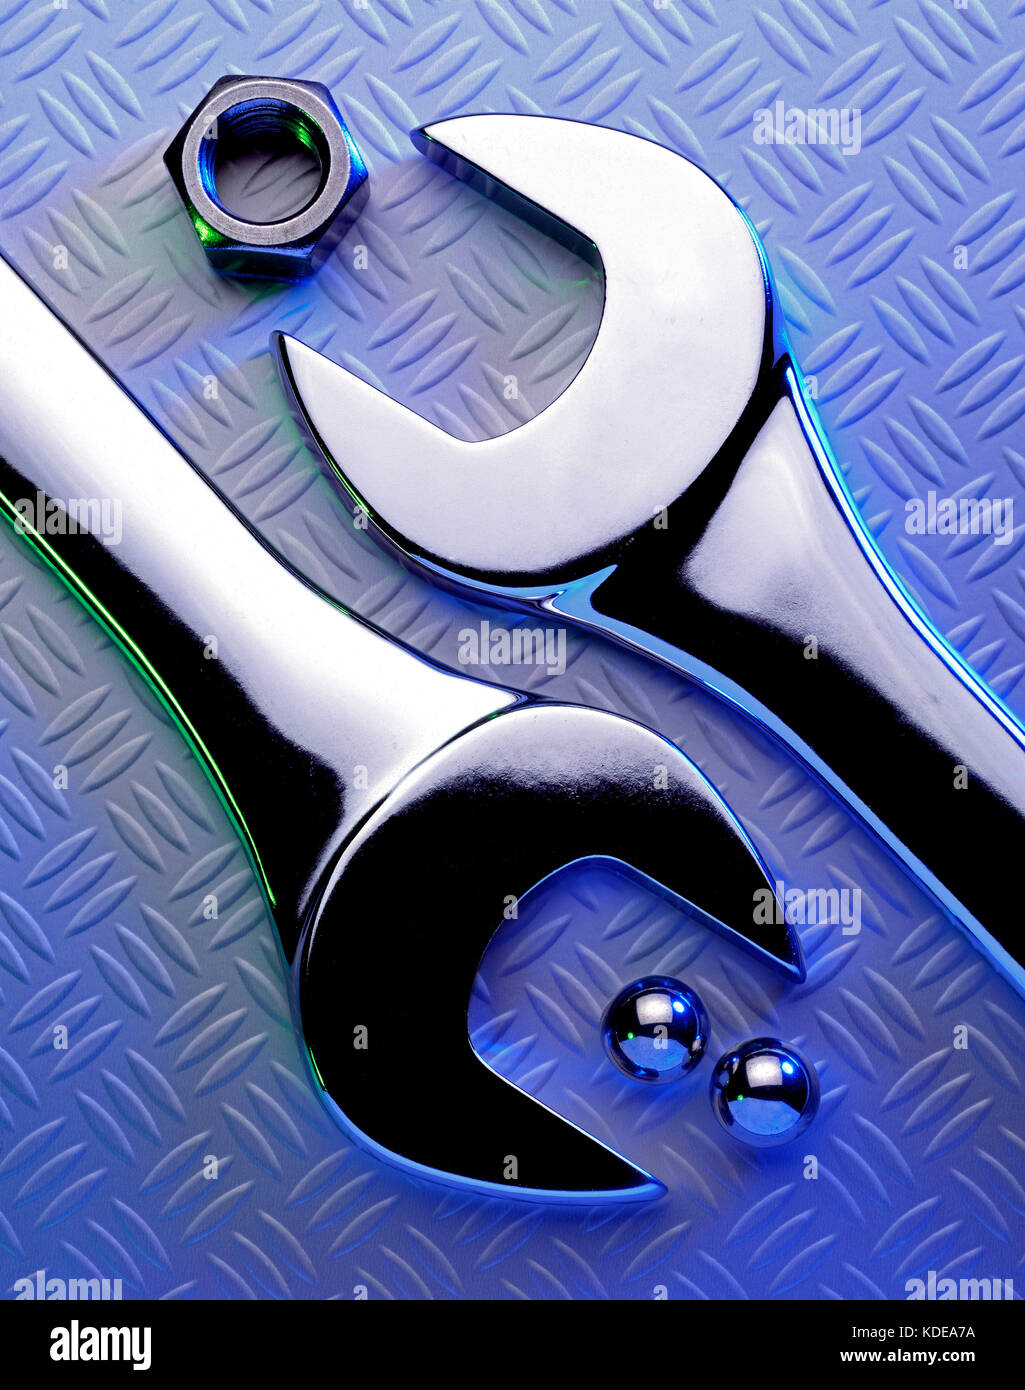 Still life. Close up of spanners. - Stock Image